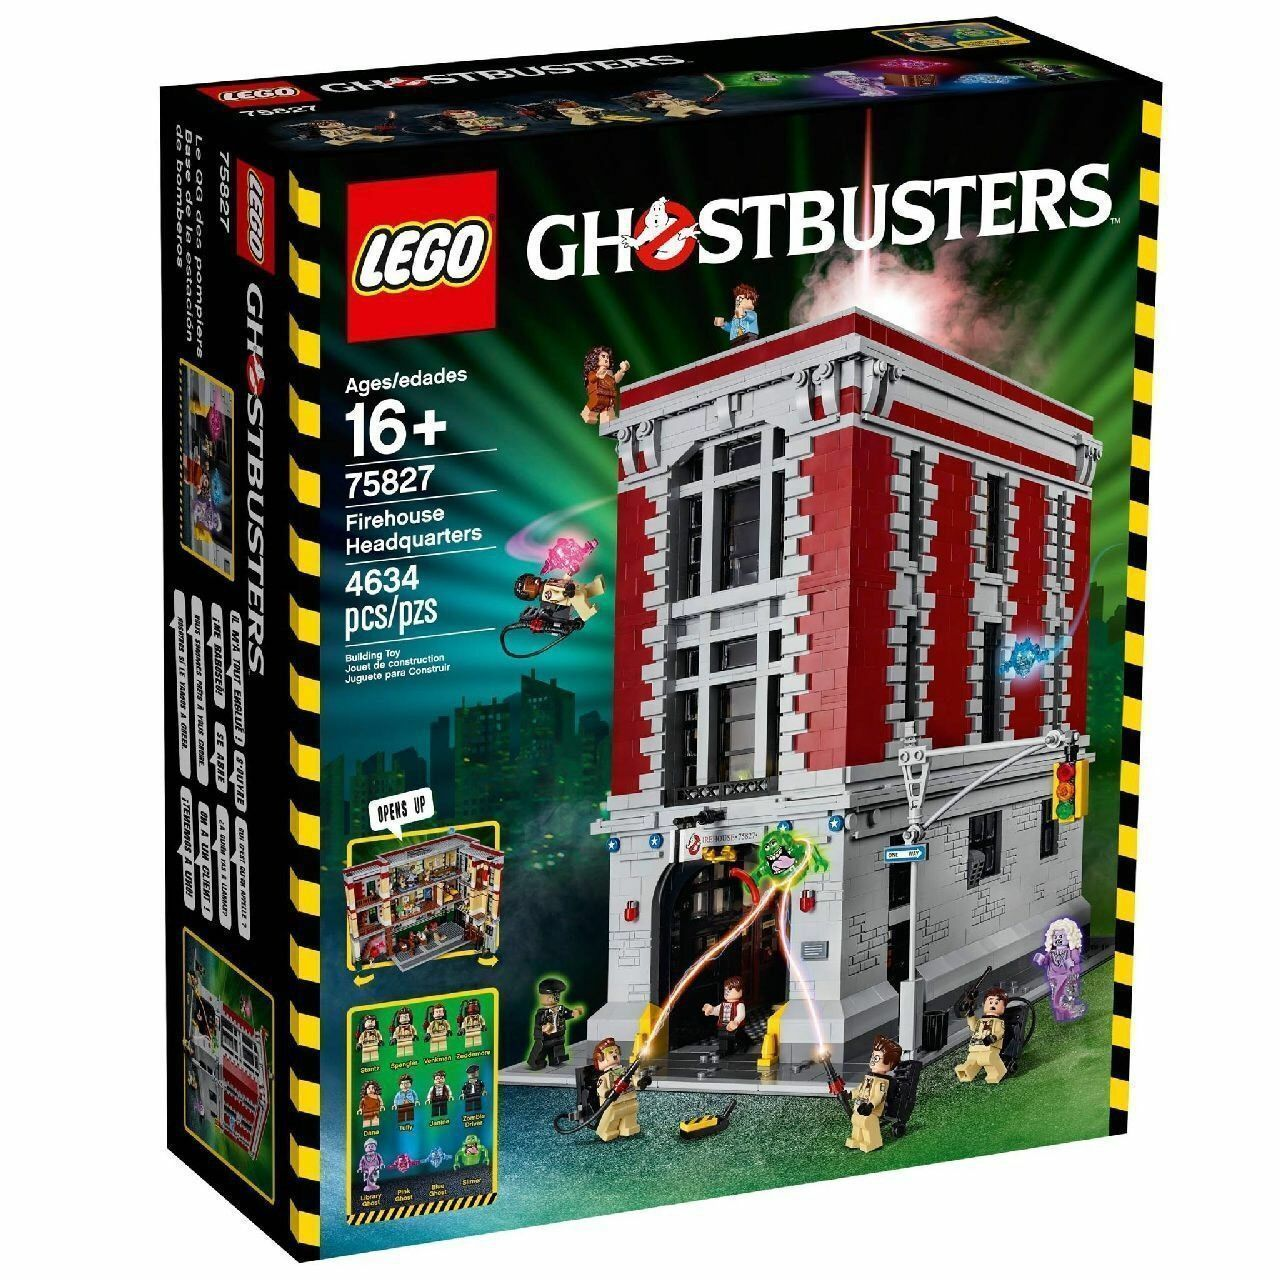 Lego Ghostbusters Firehouse Headquarters 75827 Brand New Sealed 4634 (PCS)